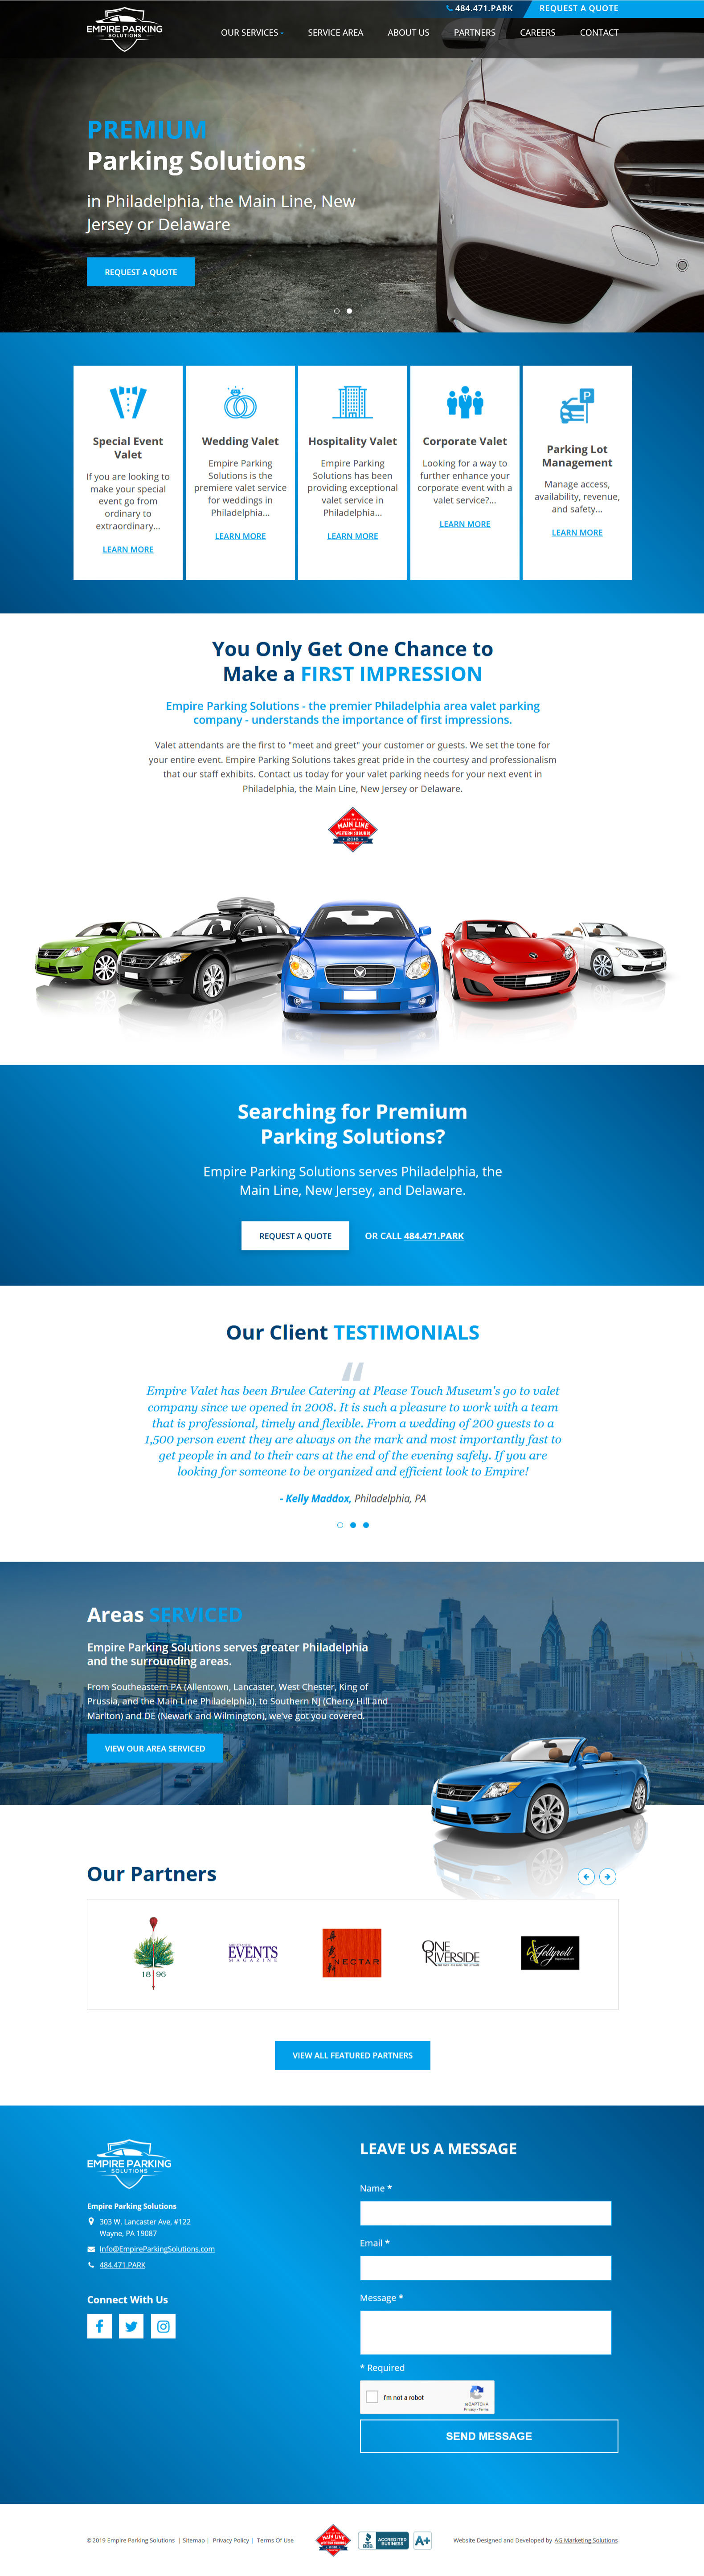 Empire Parking Solutions responsive website on a tablet